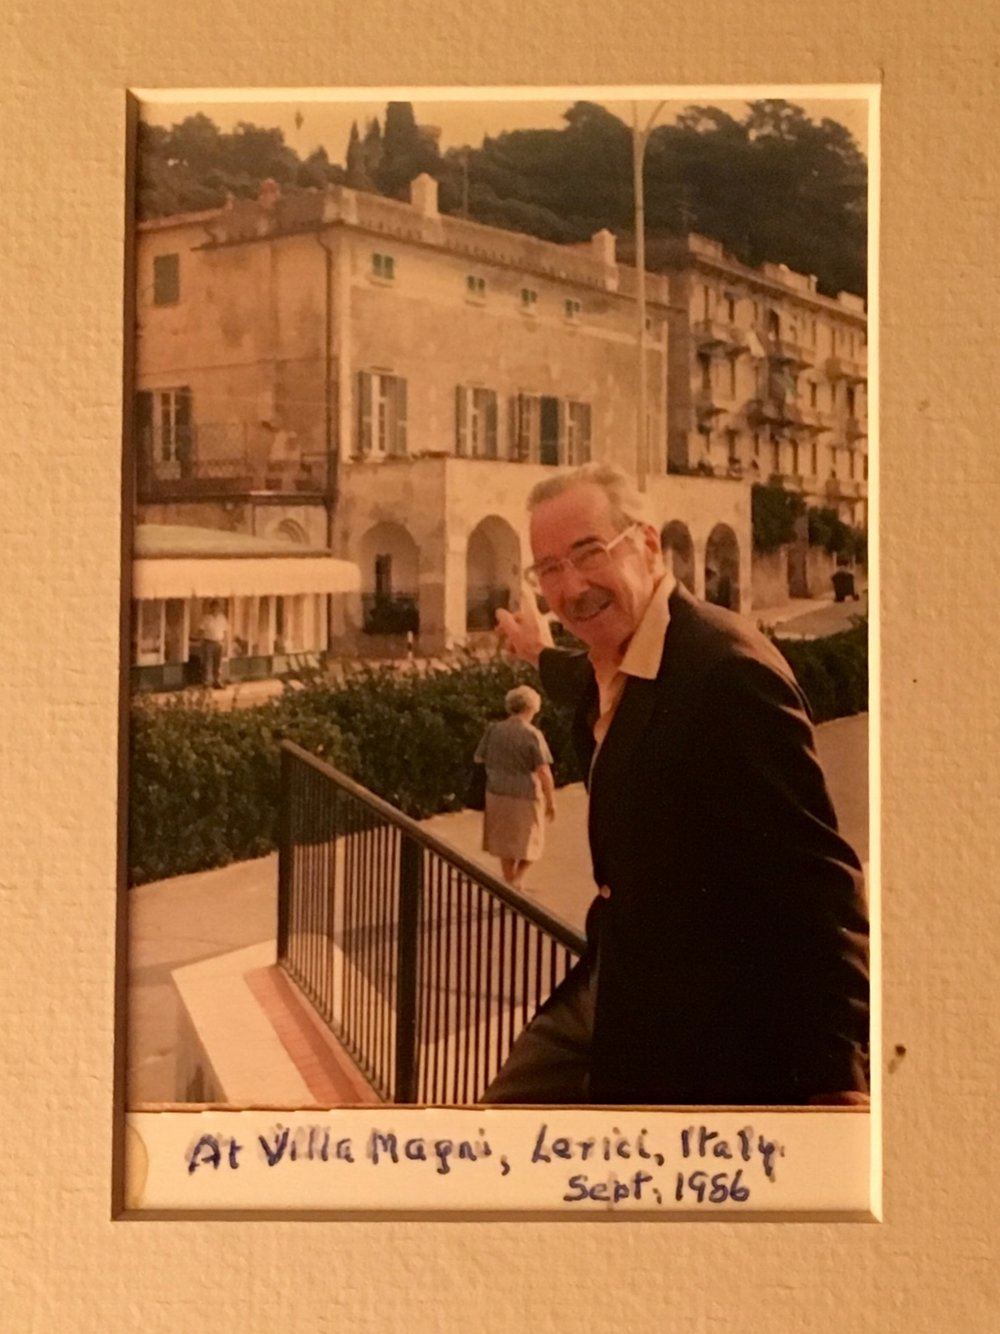 Larry Henderson at Casa Magni, Lerici, Italy, September 1986